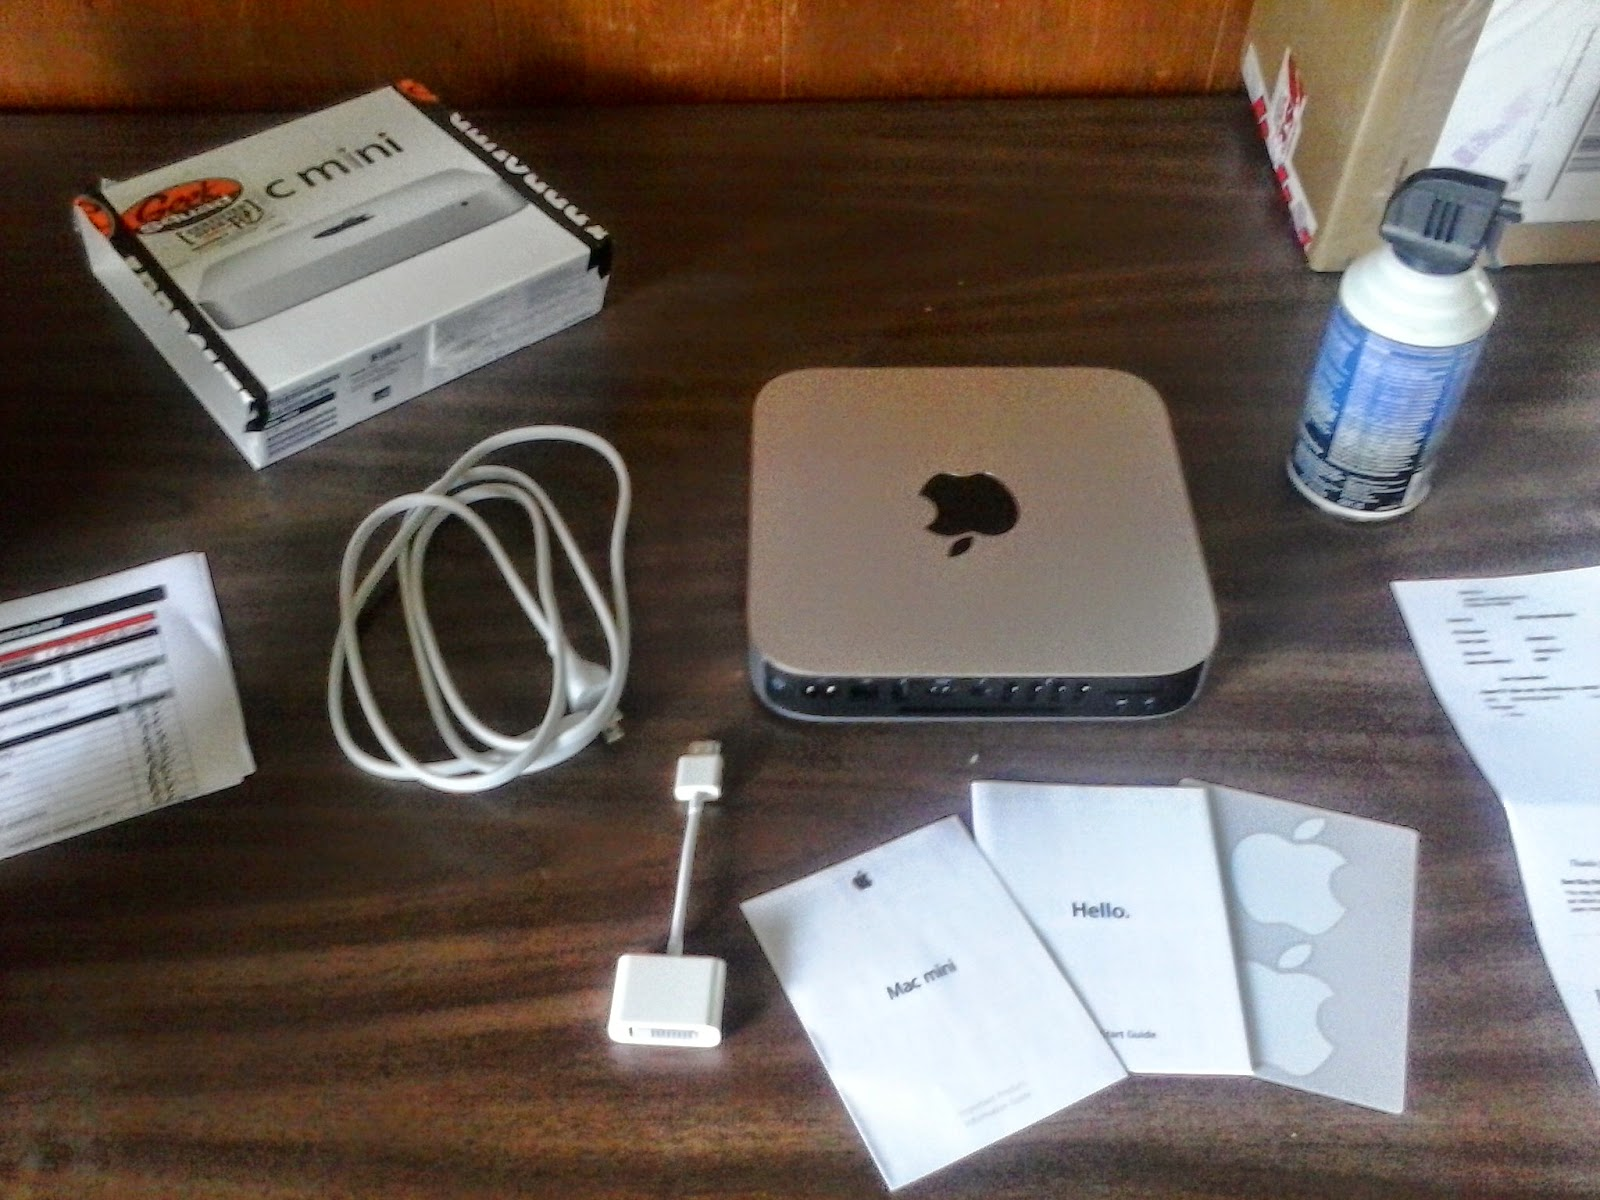 A MAC mini with all the stuff that comes with it. Key is that dongle which allows your monitor to hook up - and those nifty decals.